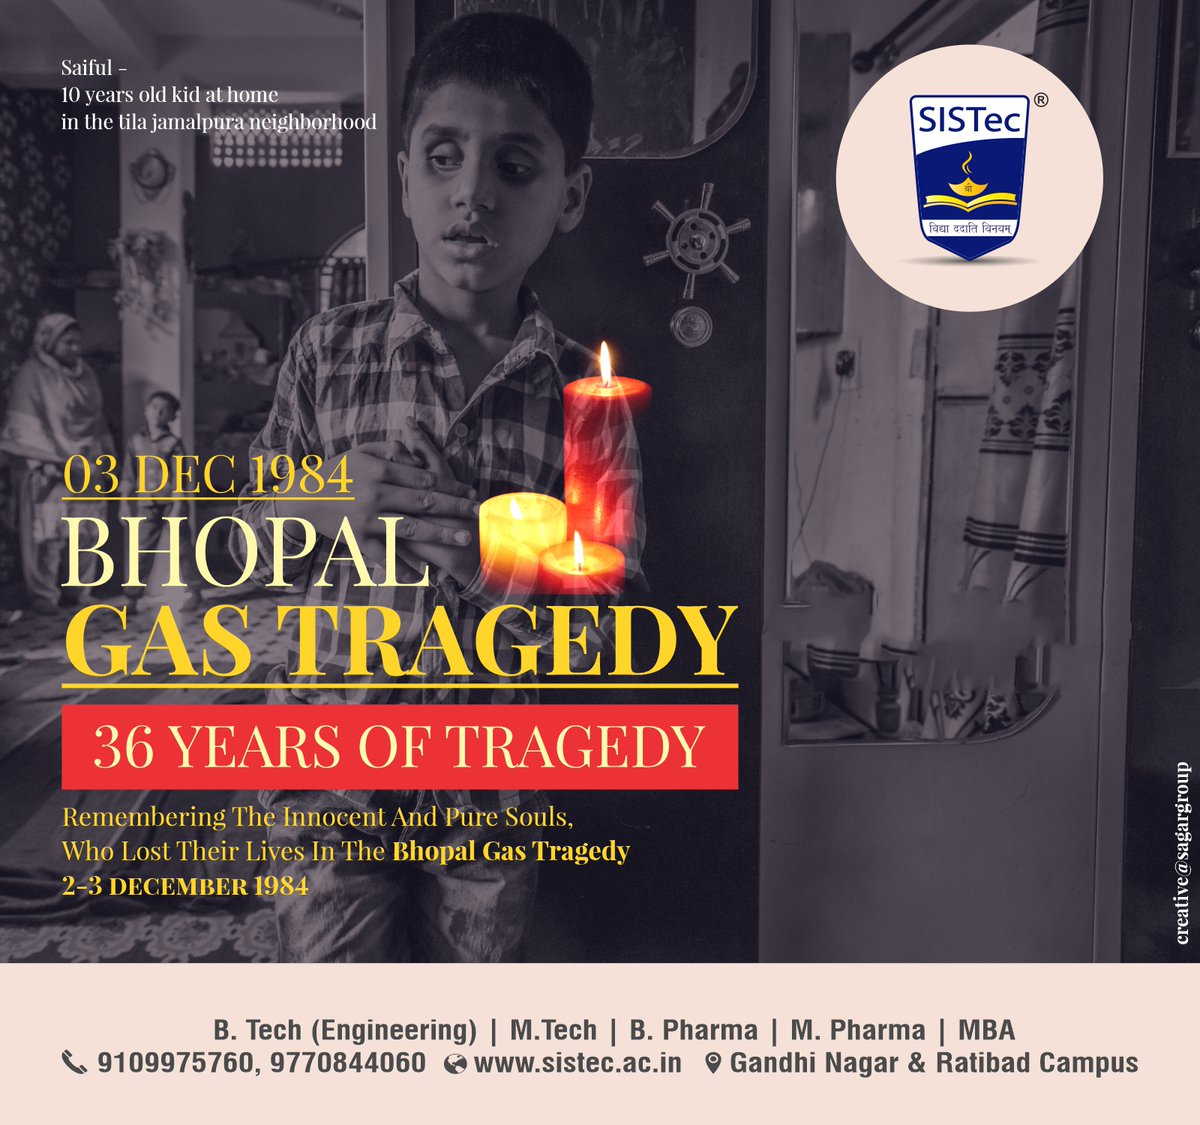 Let us come together to pay #tribute to those who lost their family and friends in Bhopal Gas Tragedy...!!!🙏   #BhopalGasTragedy #BhopalDisaster #Disaster #Bhopal  #JusticeforBhopal #BhopalGasTragedy2020 #bhfyp  🌐Website: https://t.co/BbsfubcAnc https://t.co/c93rU3kz1F